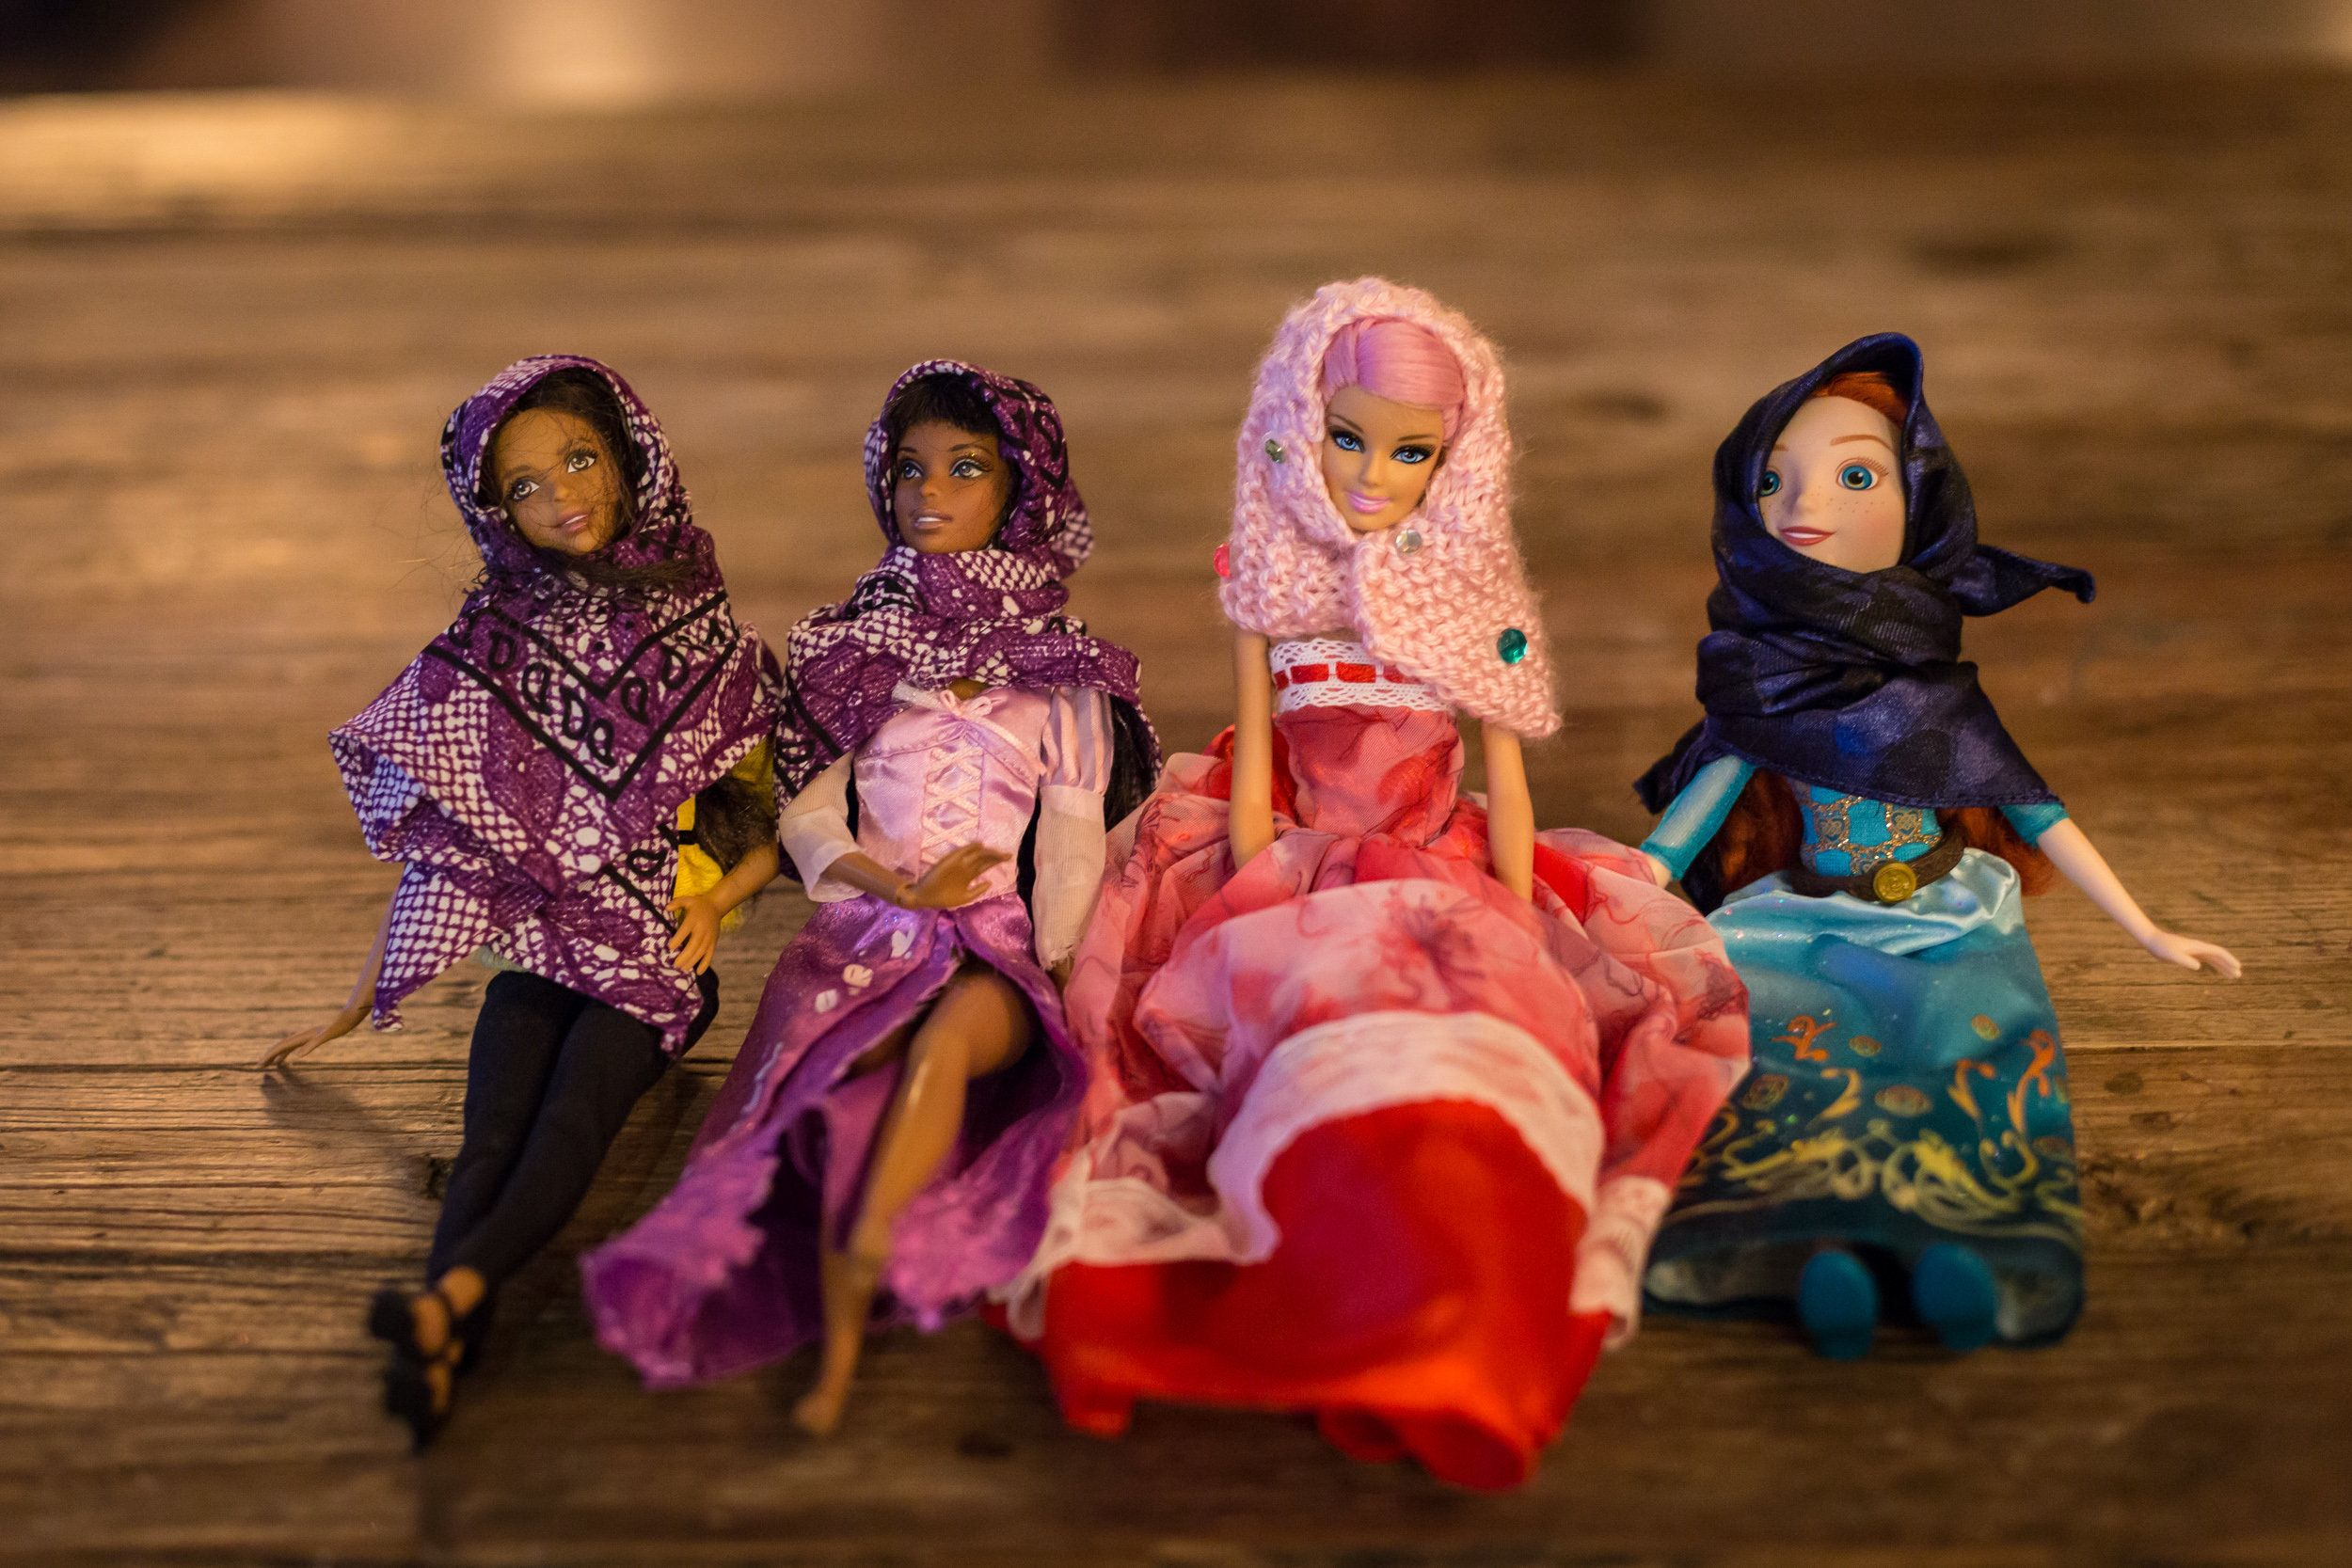 Gisele Fetterman partnered with Safaaa Bokhari, both residents of Pittsburgh, to offer hand-made hijabs as accessories for dolls.